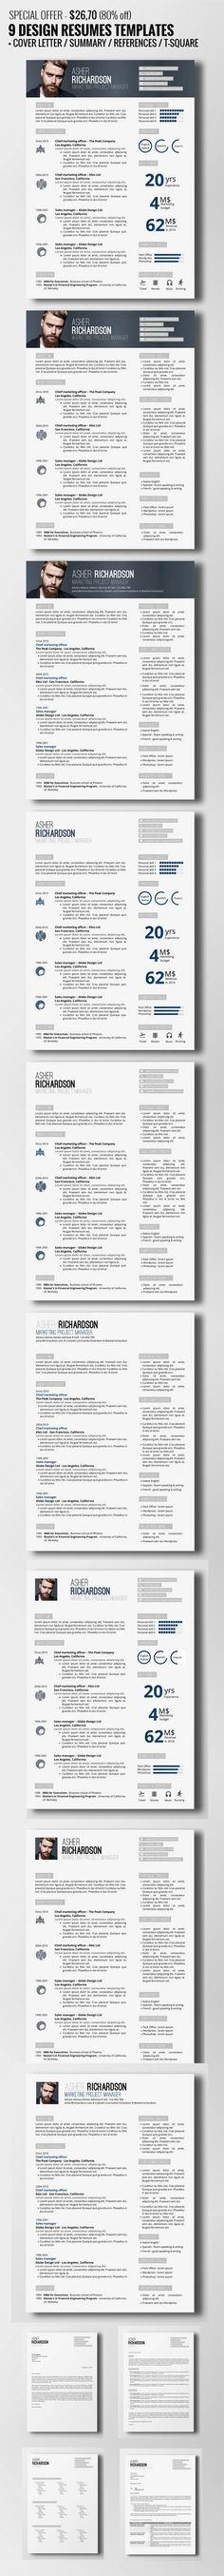 435 best Resume images on Pinterest Resume design, Design resume - resume layout tips